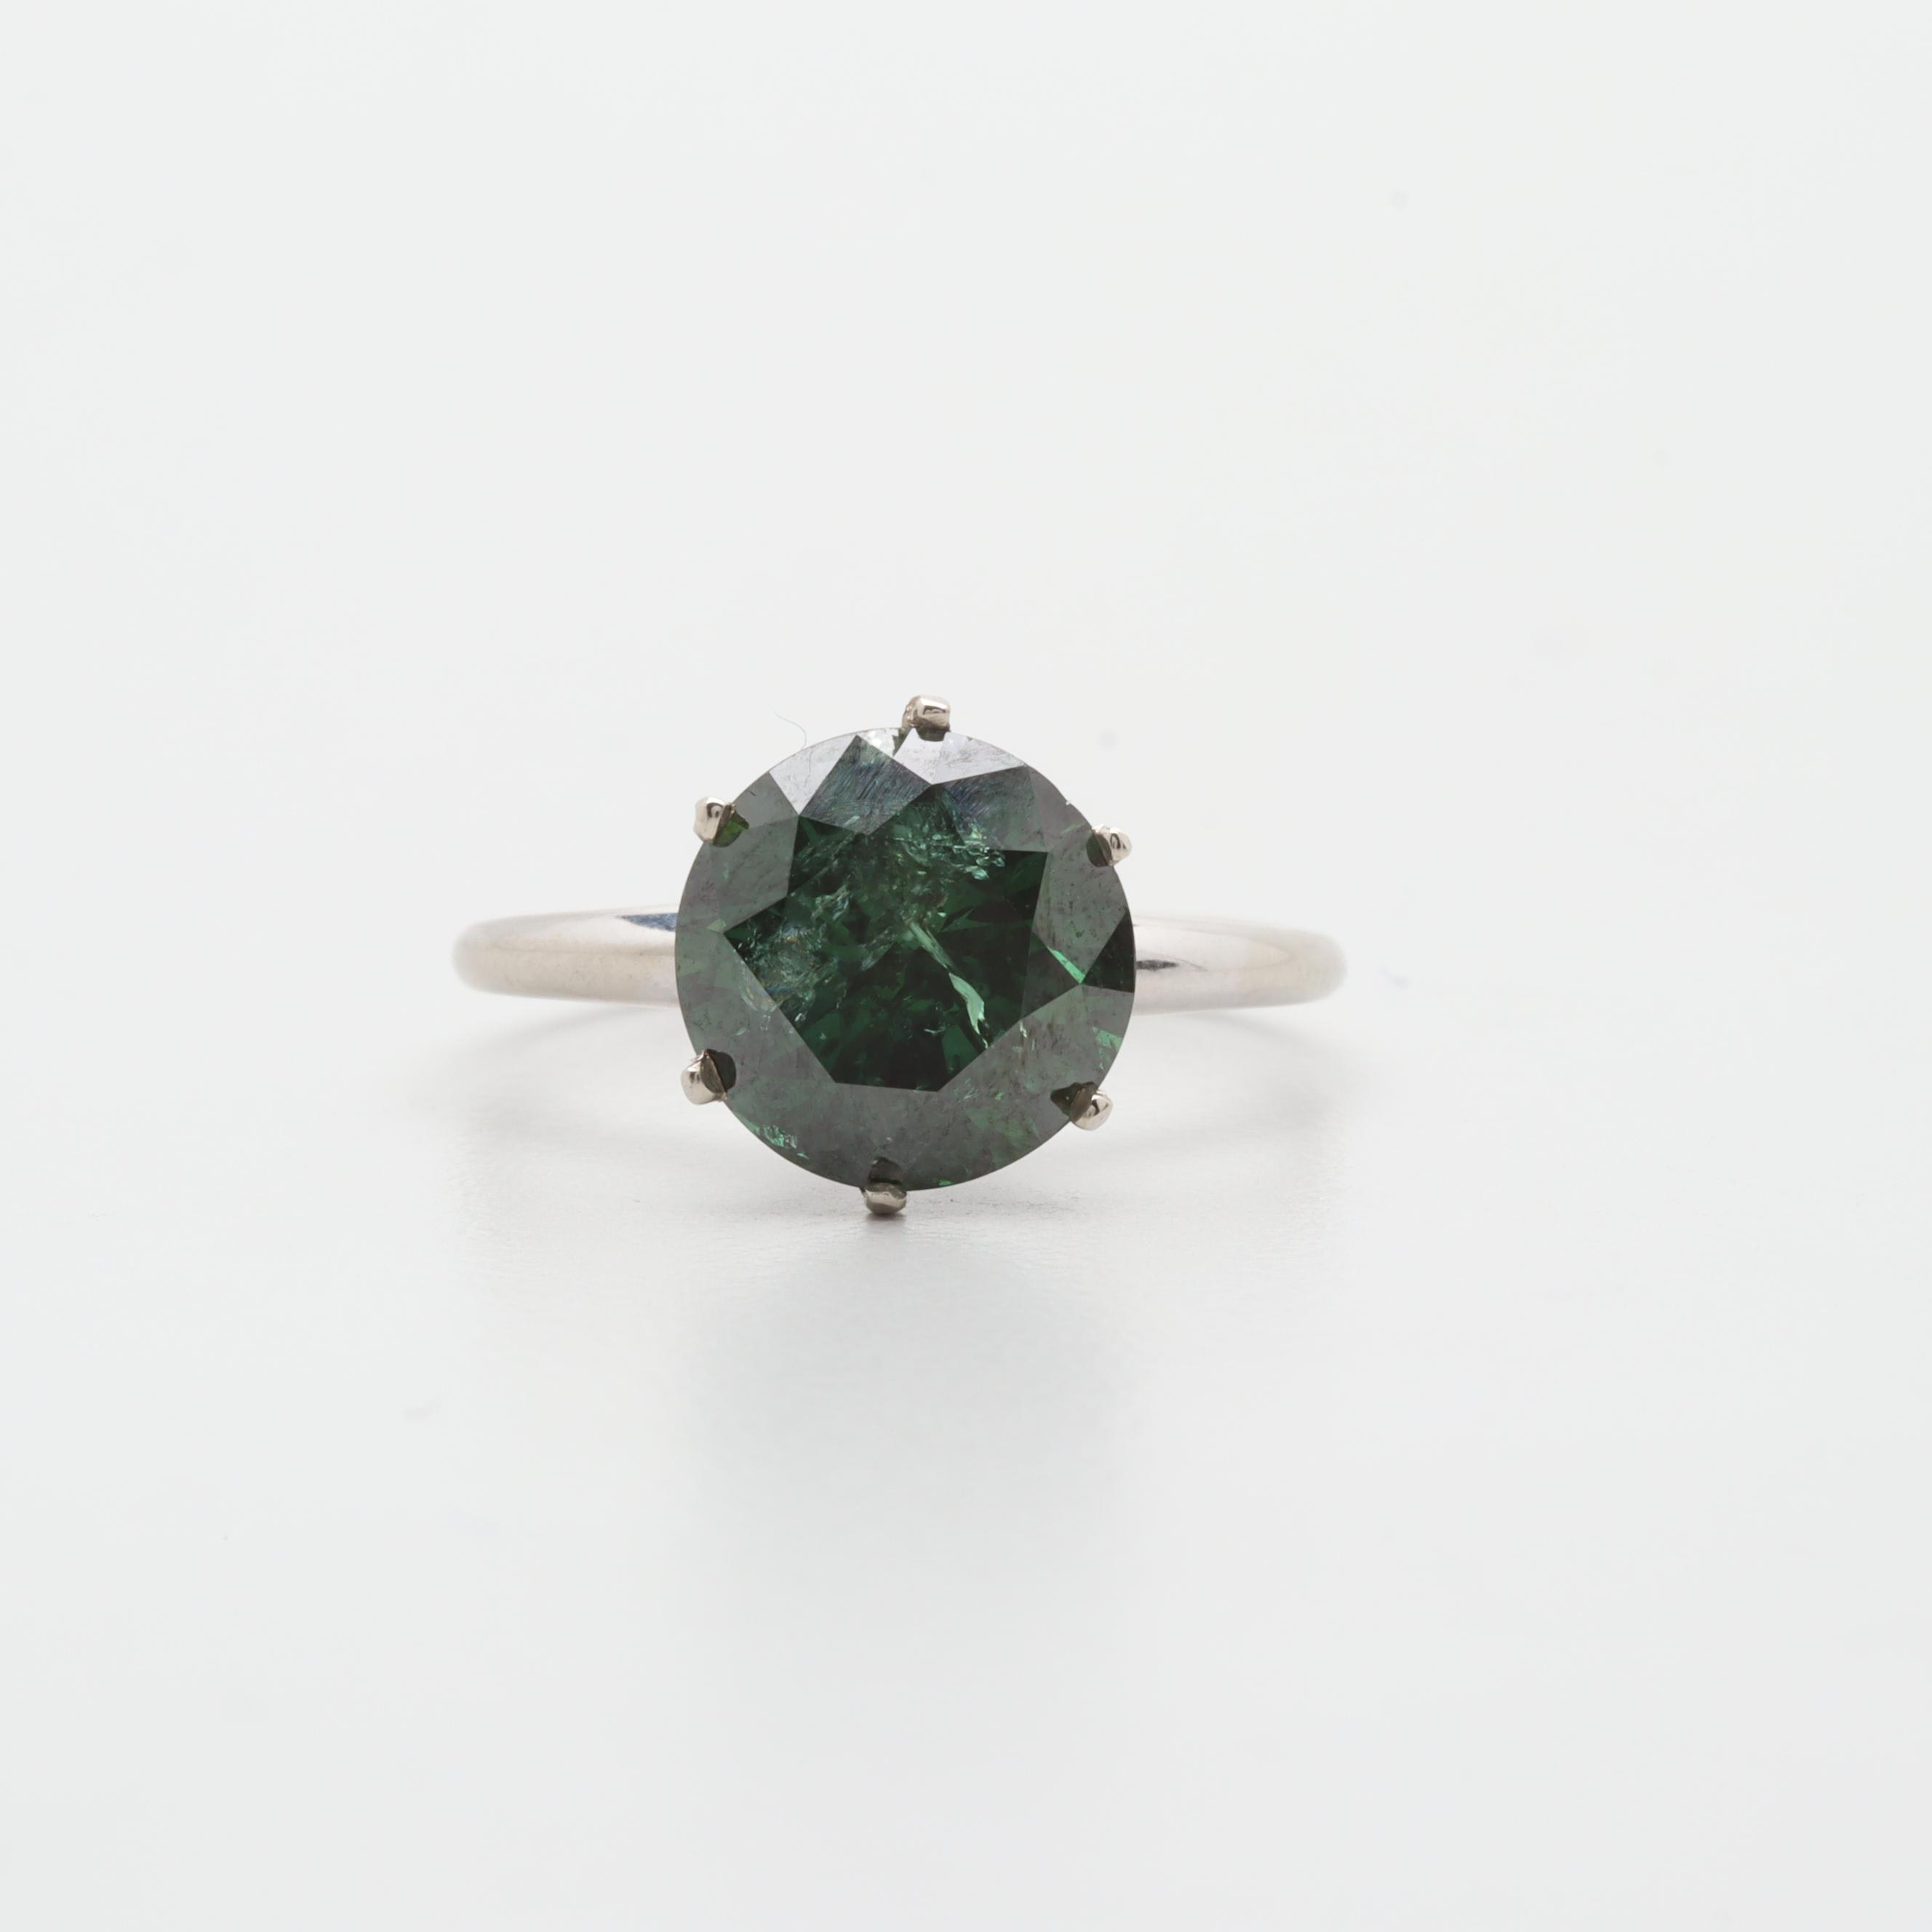 10K and 14K White Gold 3.26 CT Green Diamond Solitaire Ring